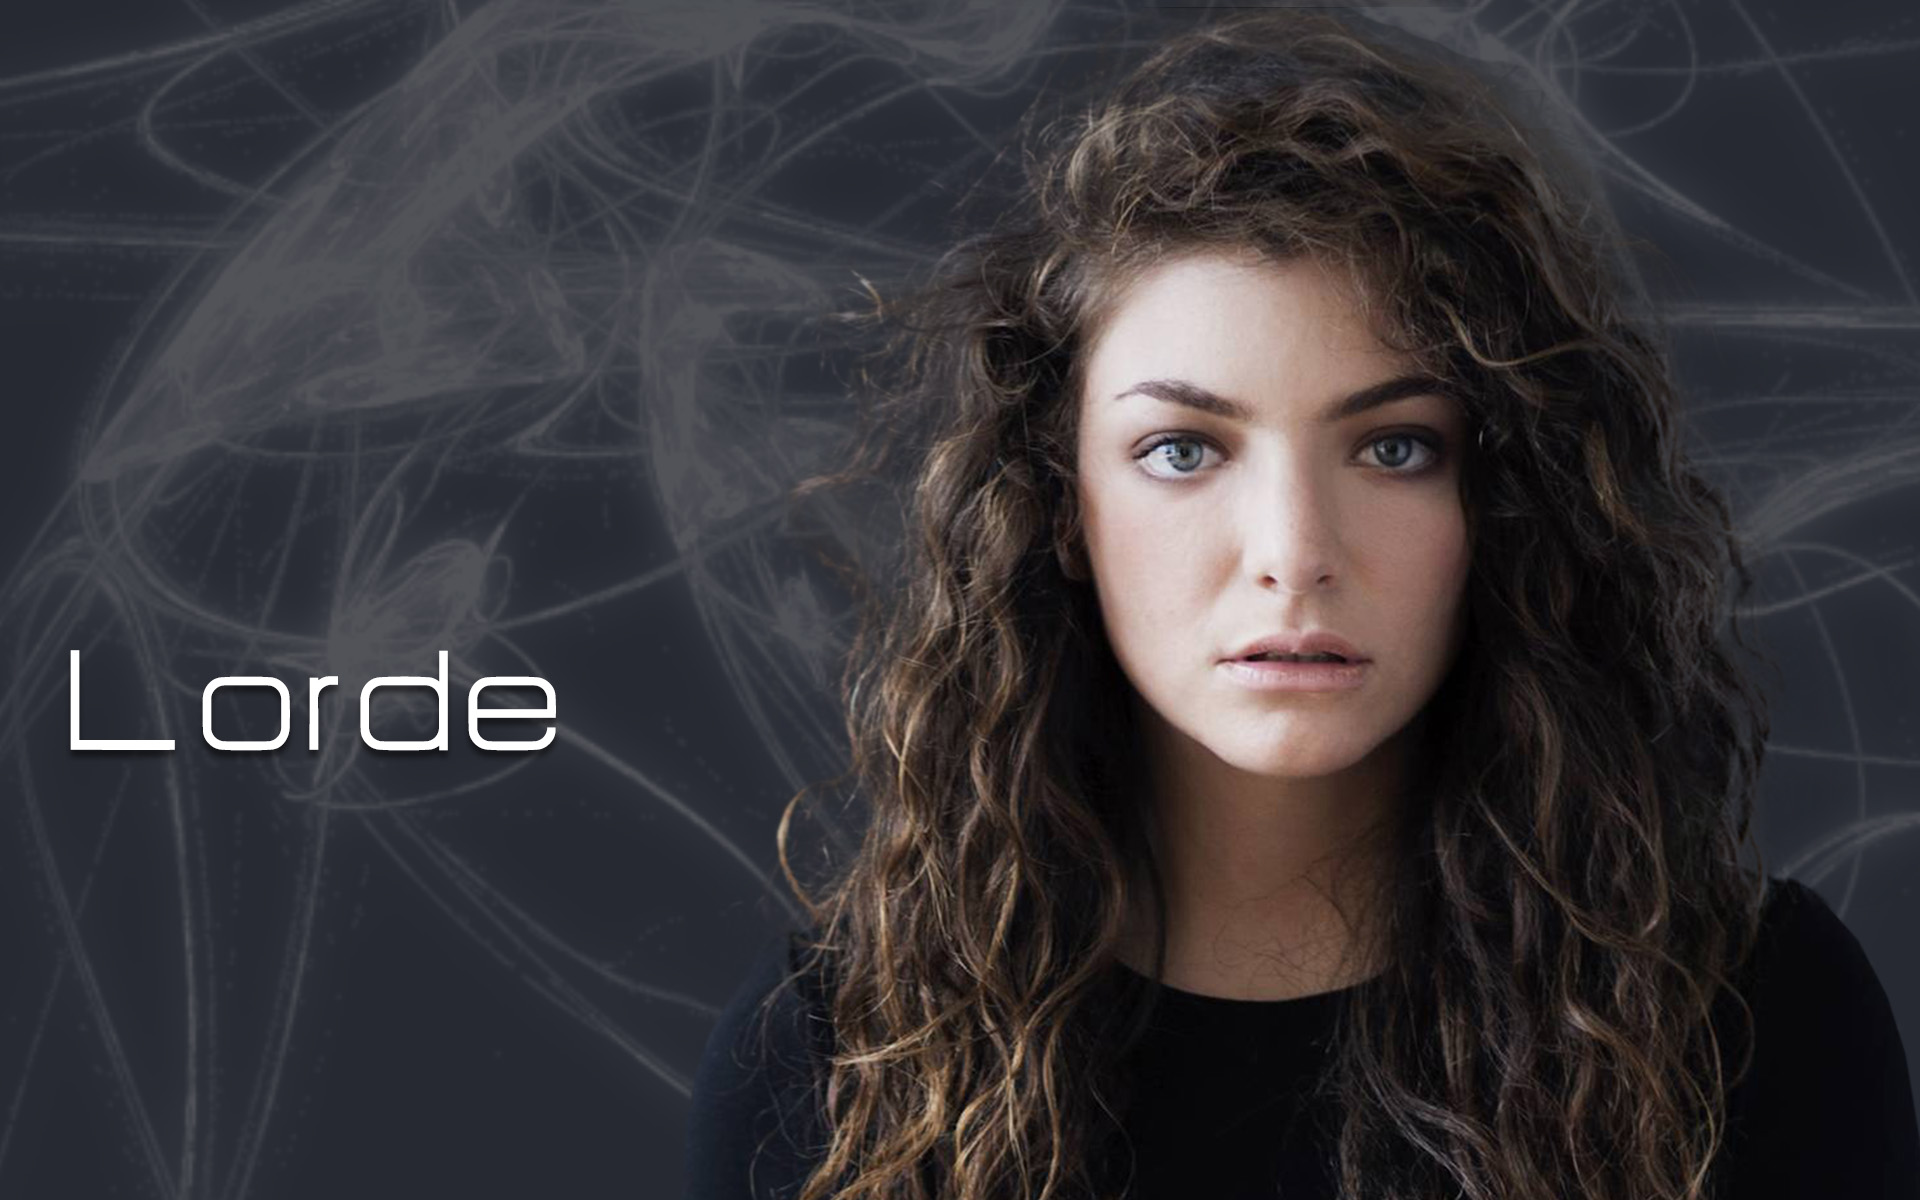 Lorde Singer Quotes Quotesgram Images, Photos, Reviews